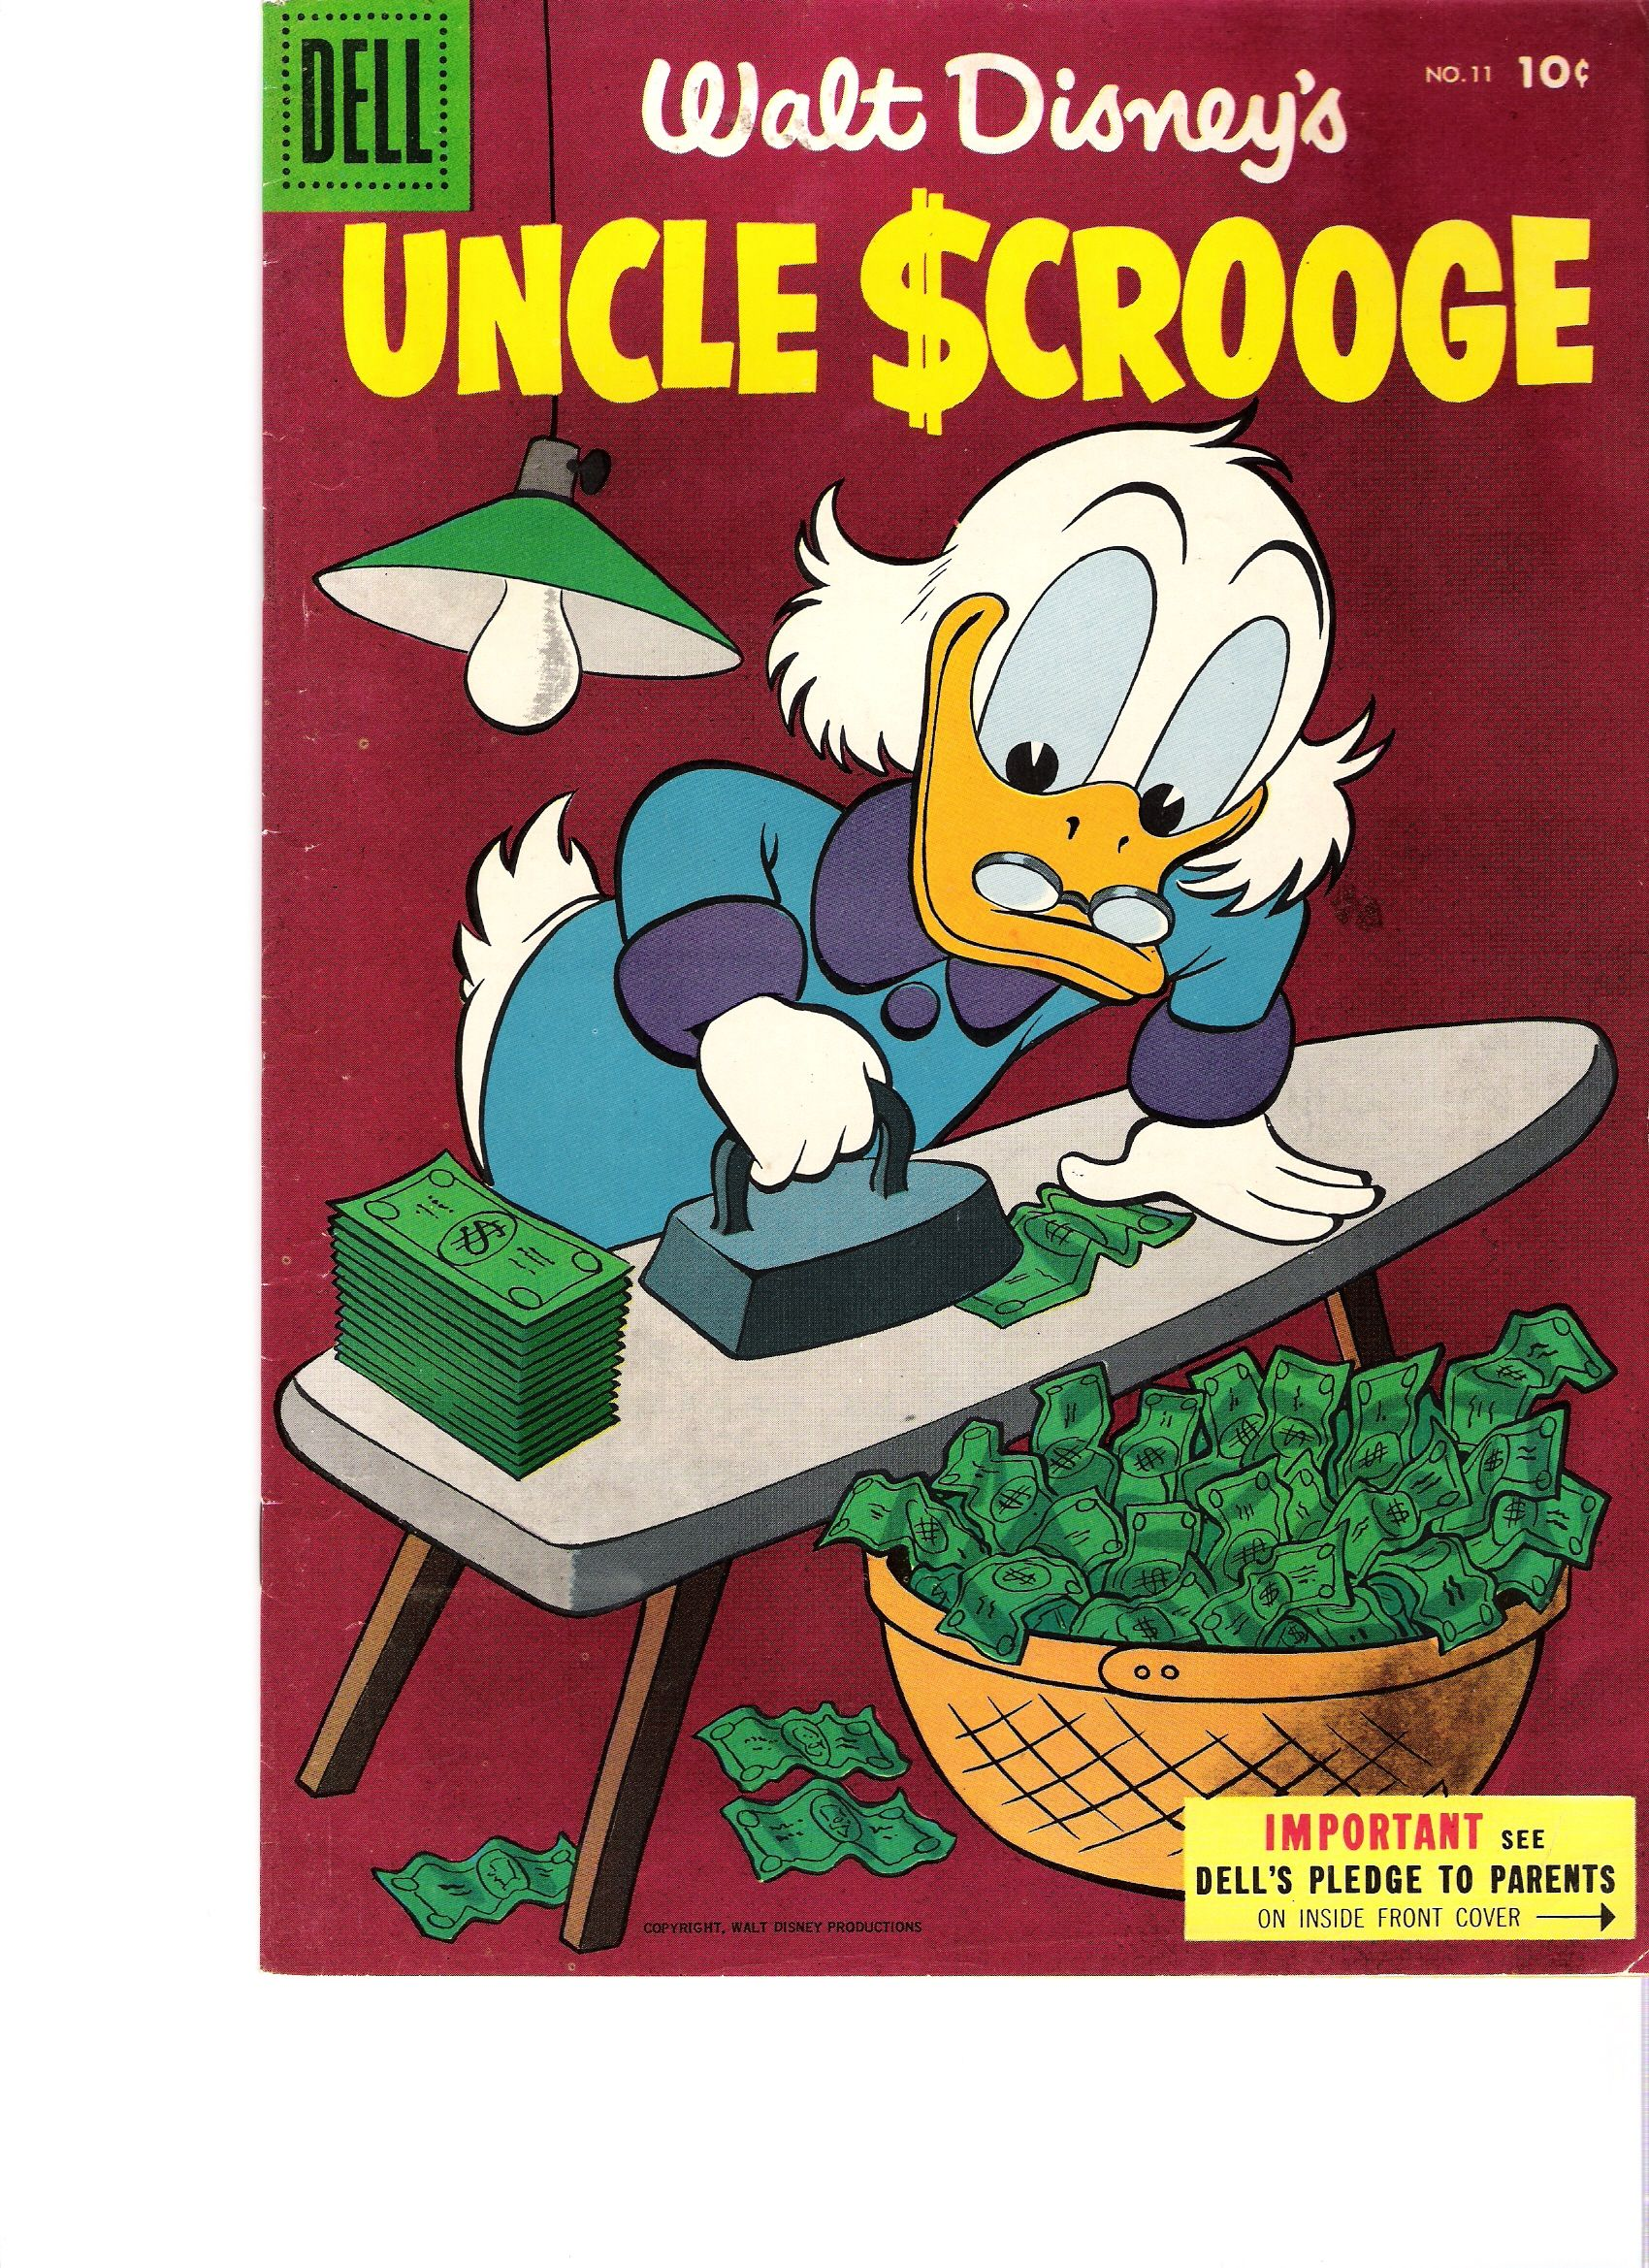 In my comic collection-Carl Barks one of my favorite artists